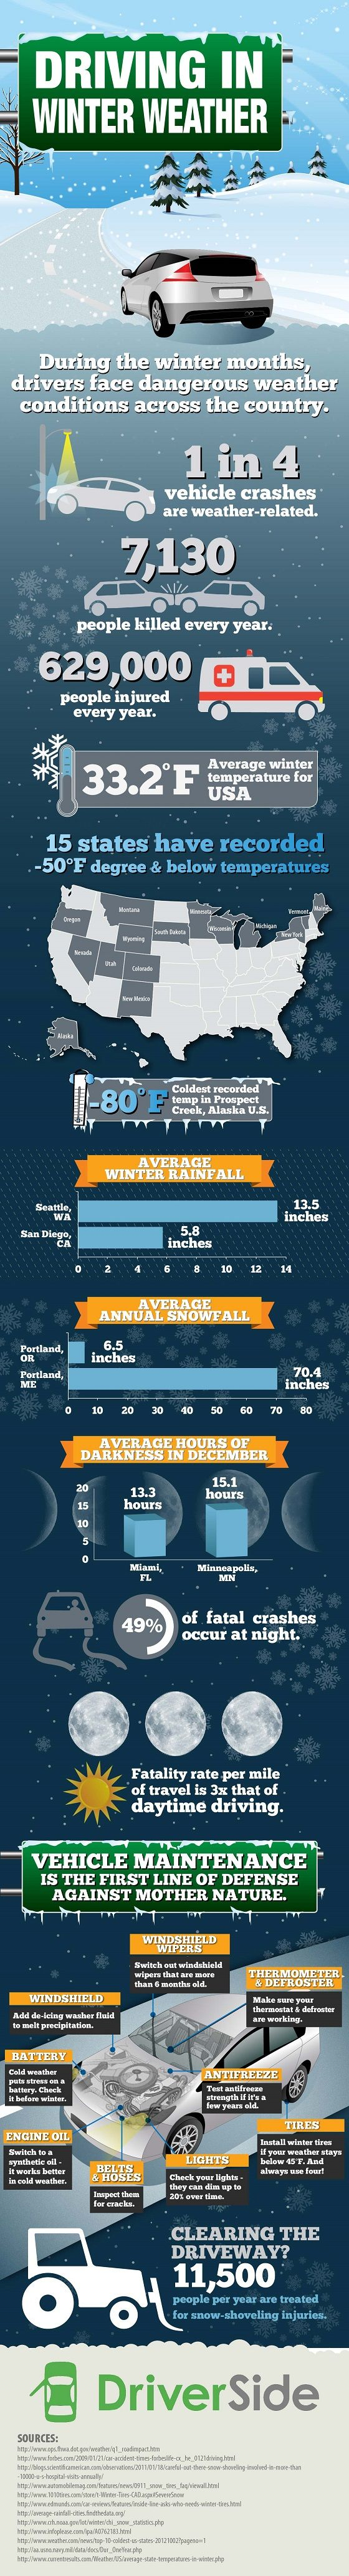 #Winter weather driving tips #infographic